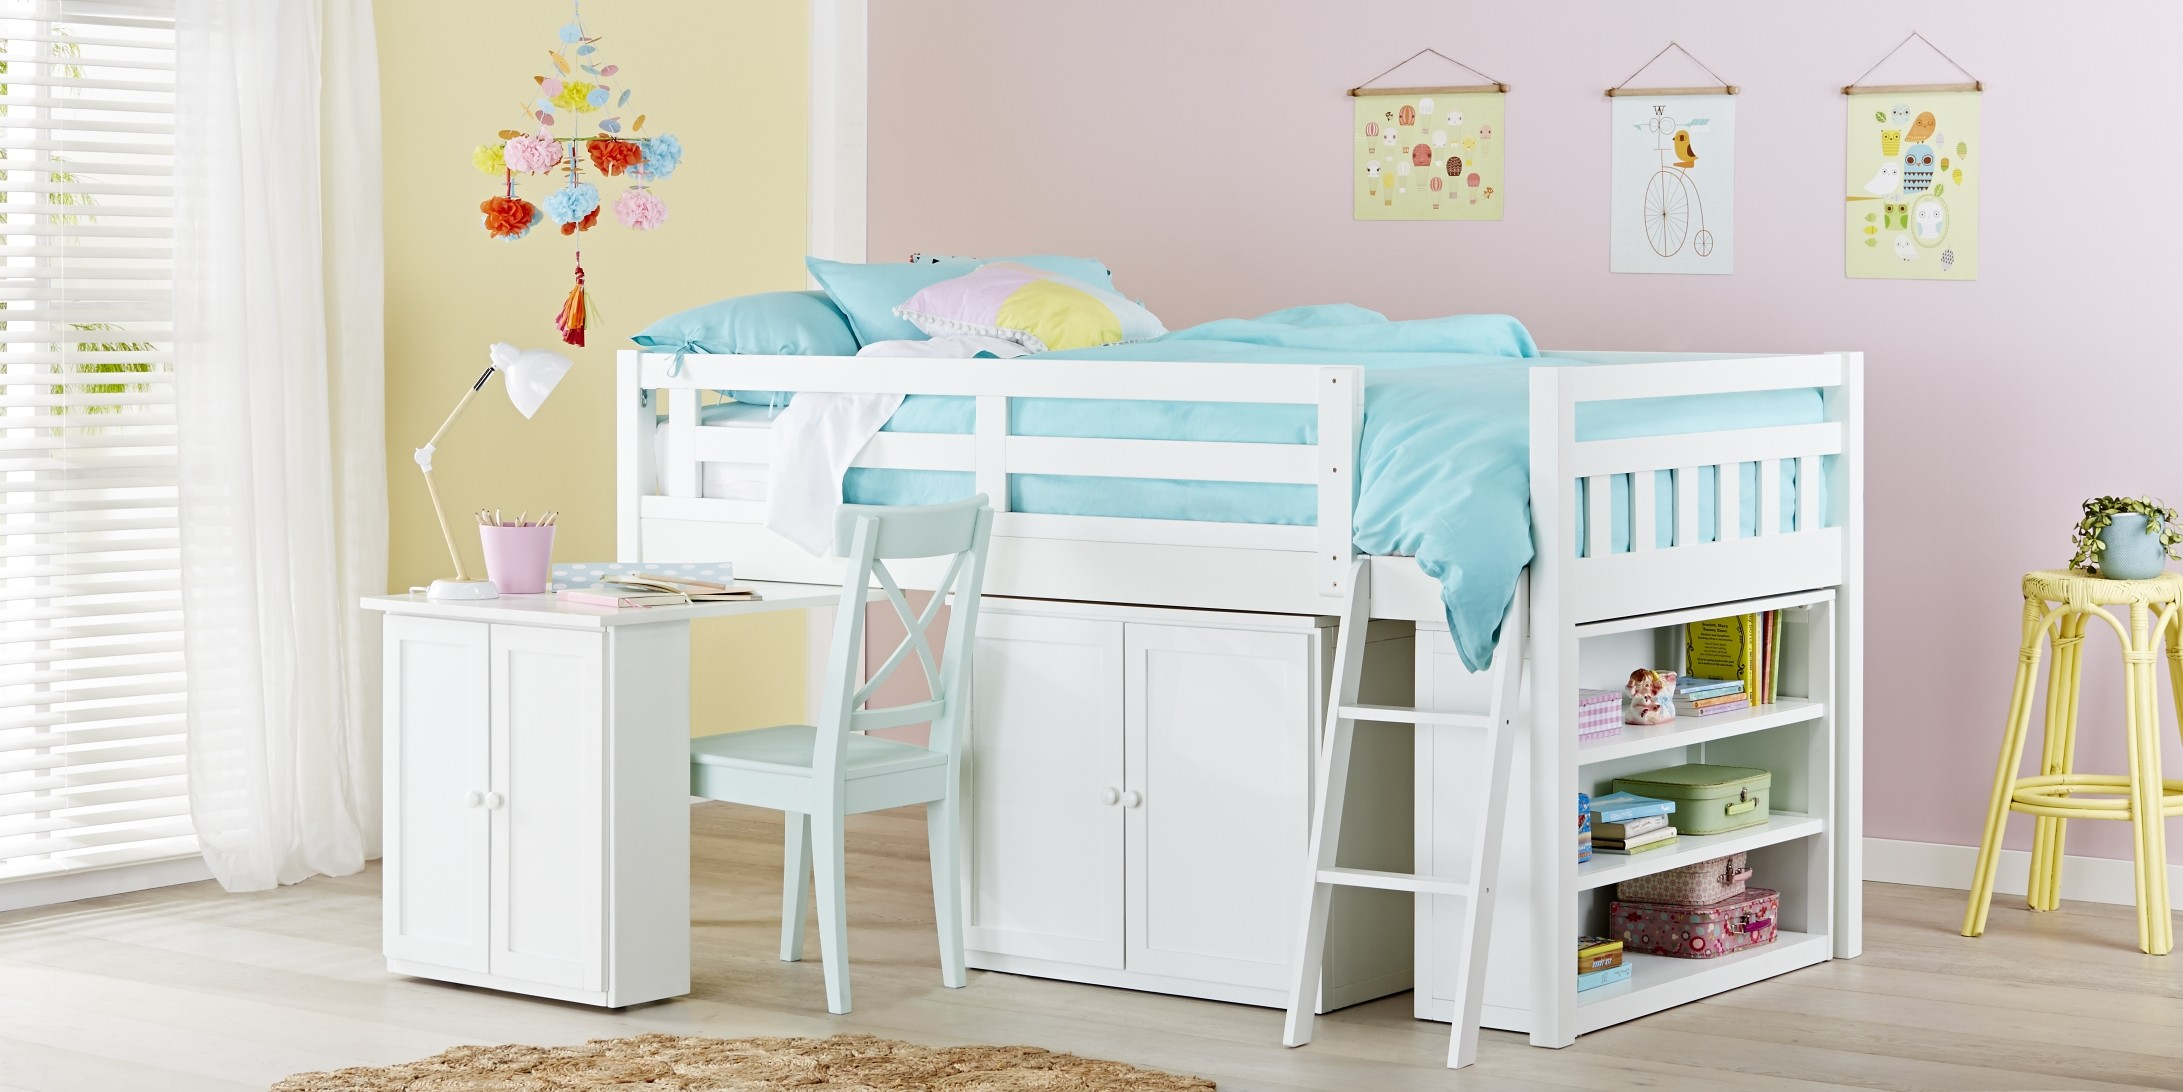 Cheap Storage Adelaide Try Out Bunk Beds For A Better Experience Kidsbunkbed In